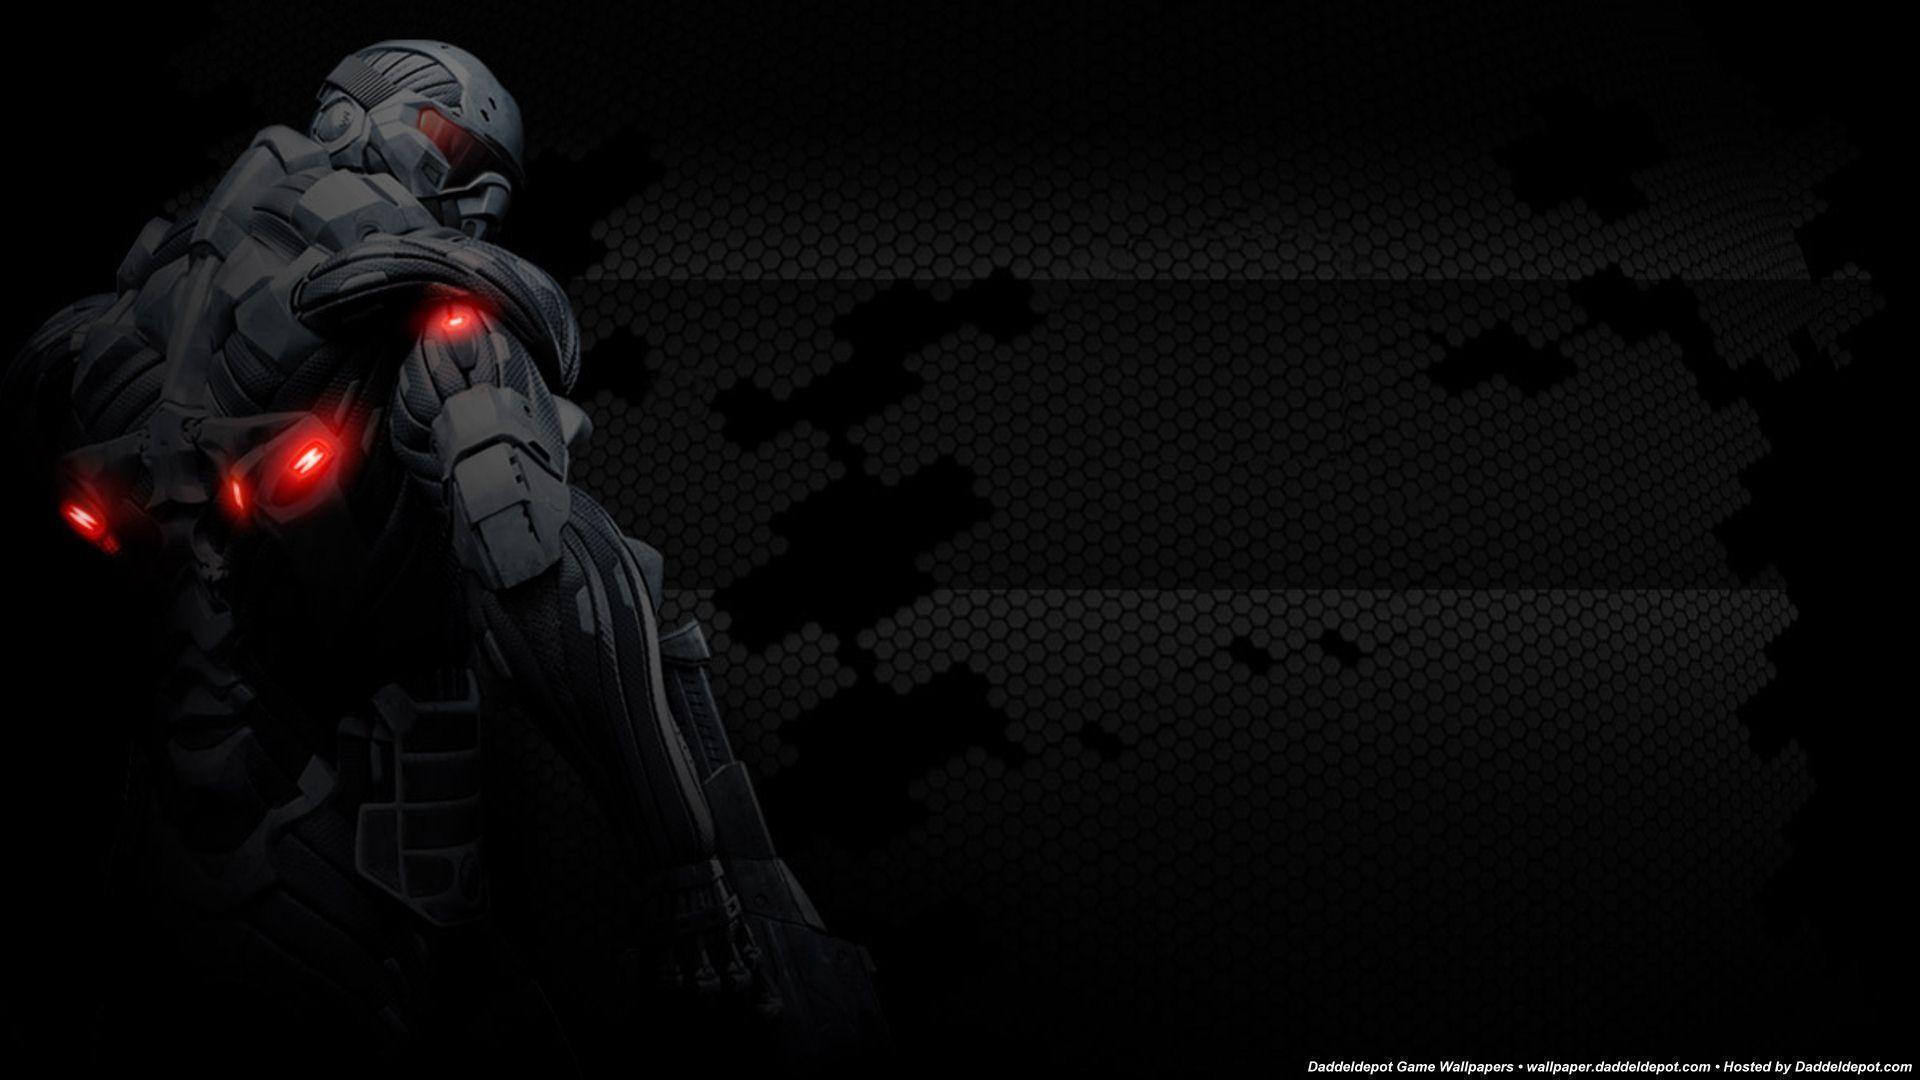 Crysis Wallpapers HD - Wallpaper Cave